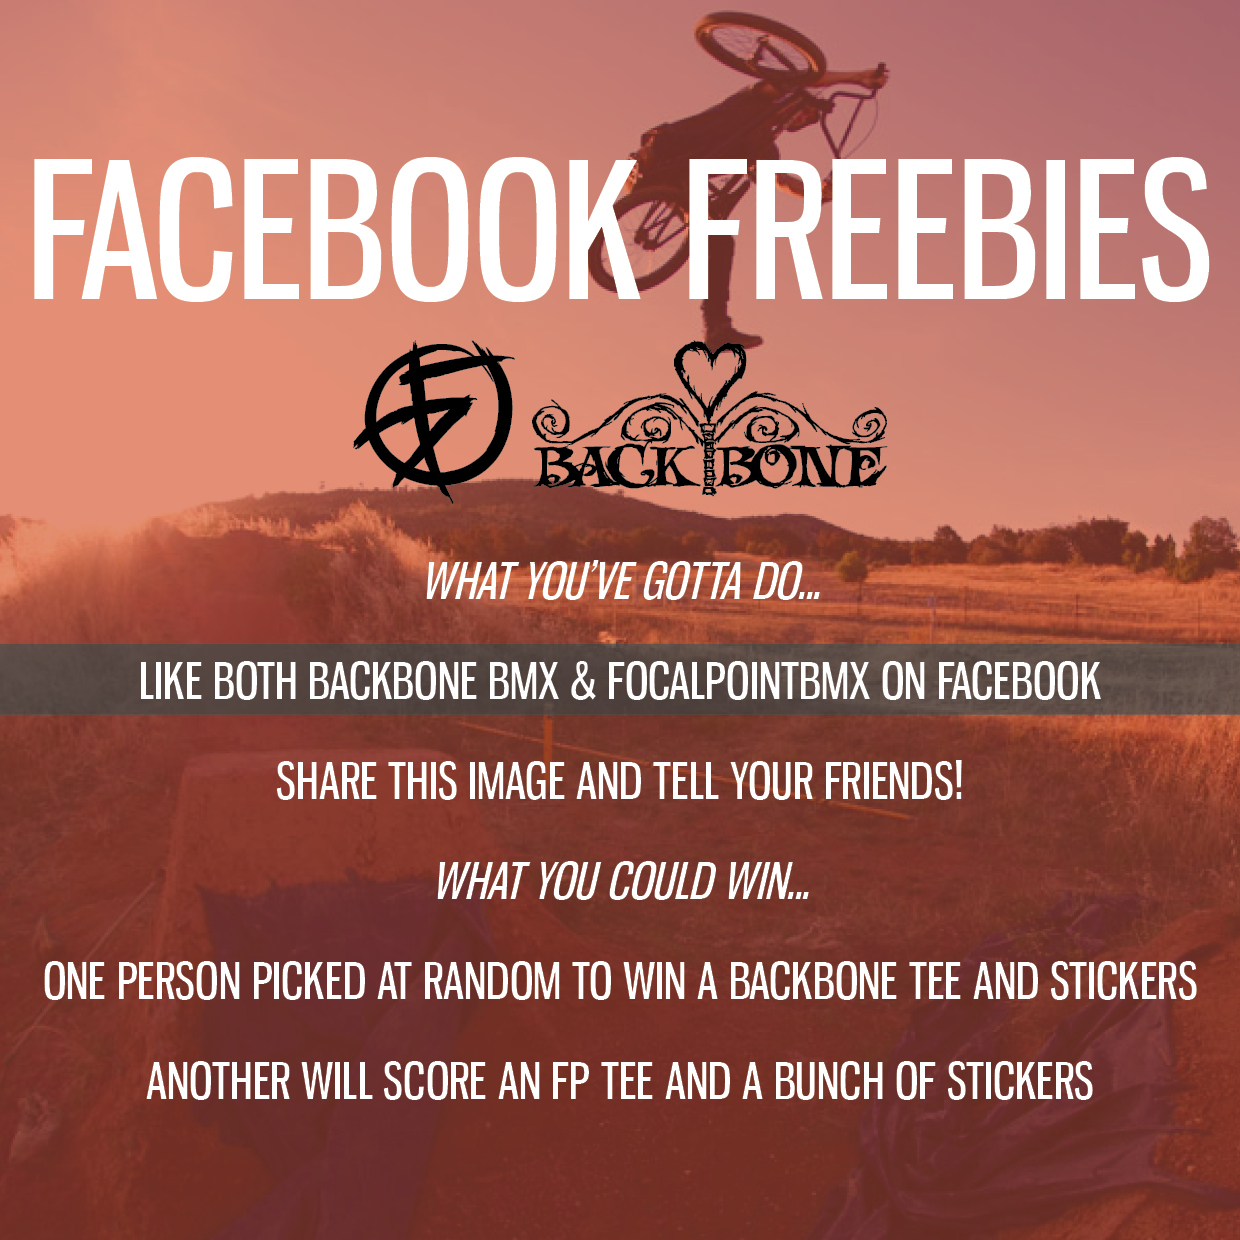 FACEBOOK FREEBIES backbone